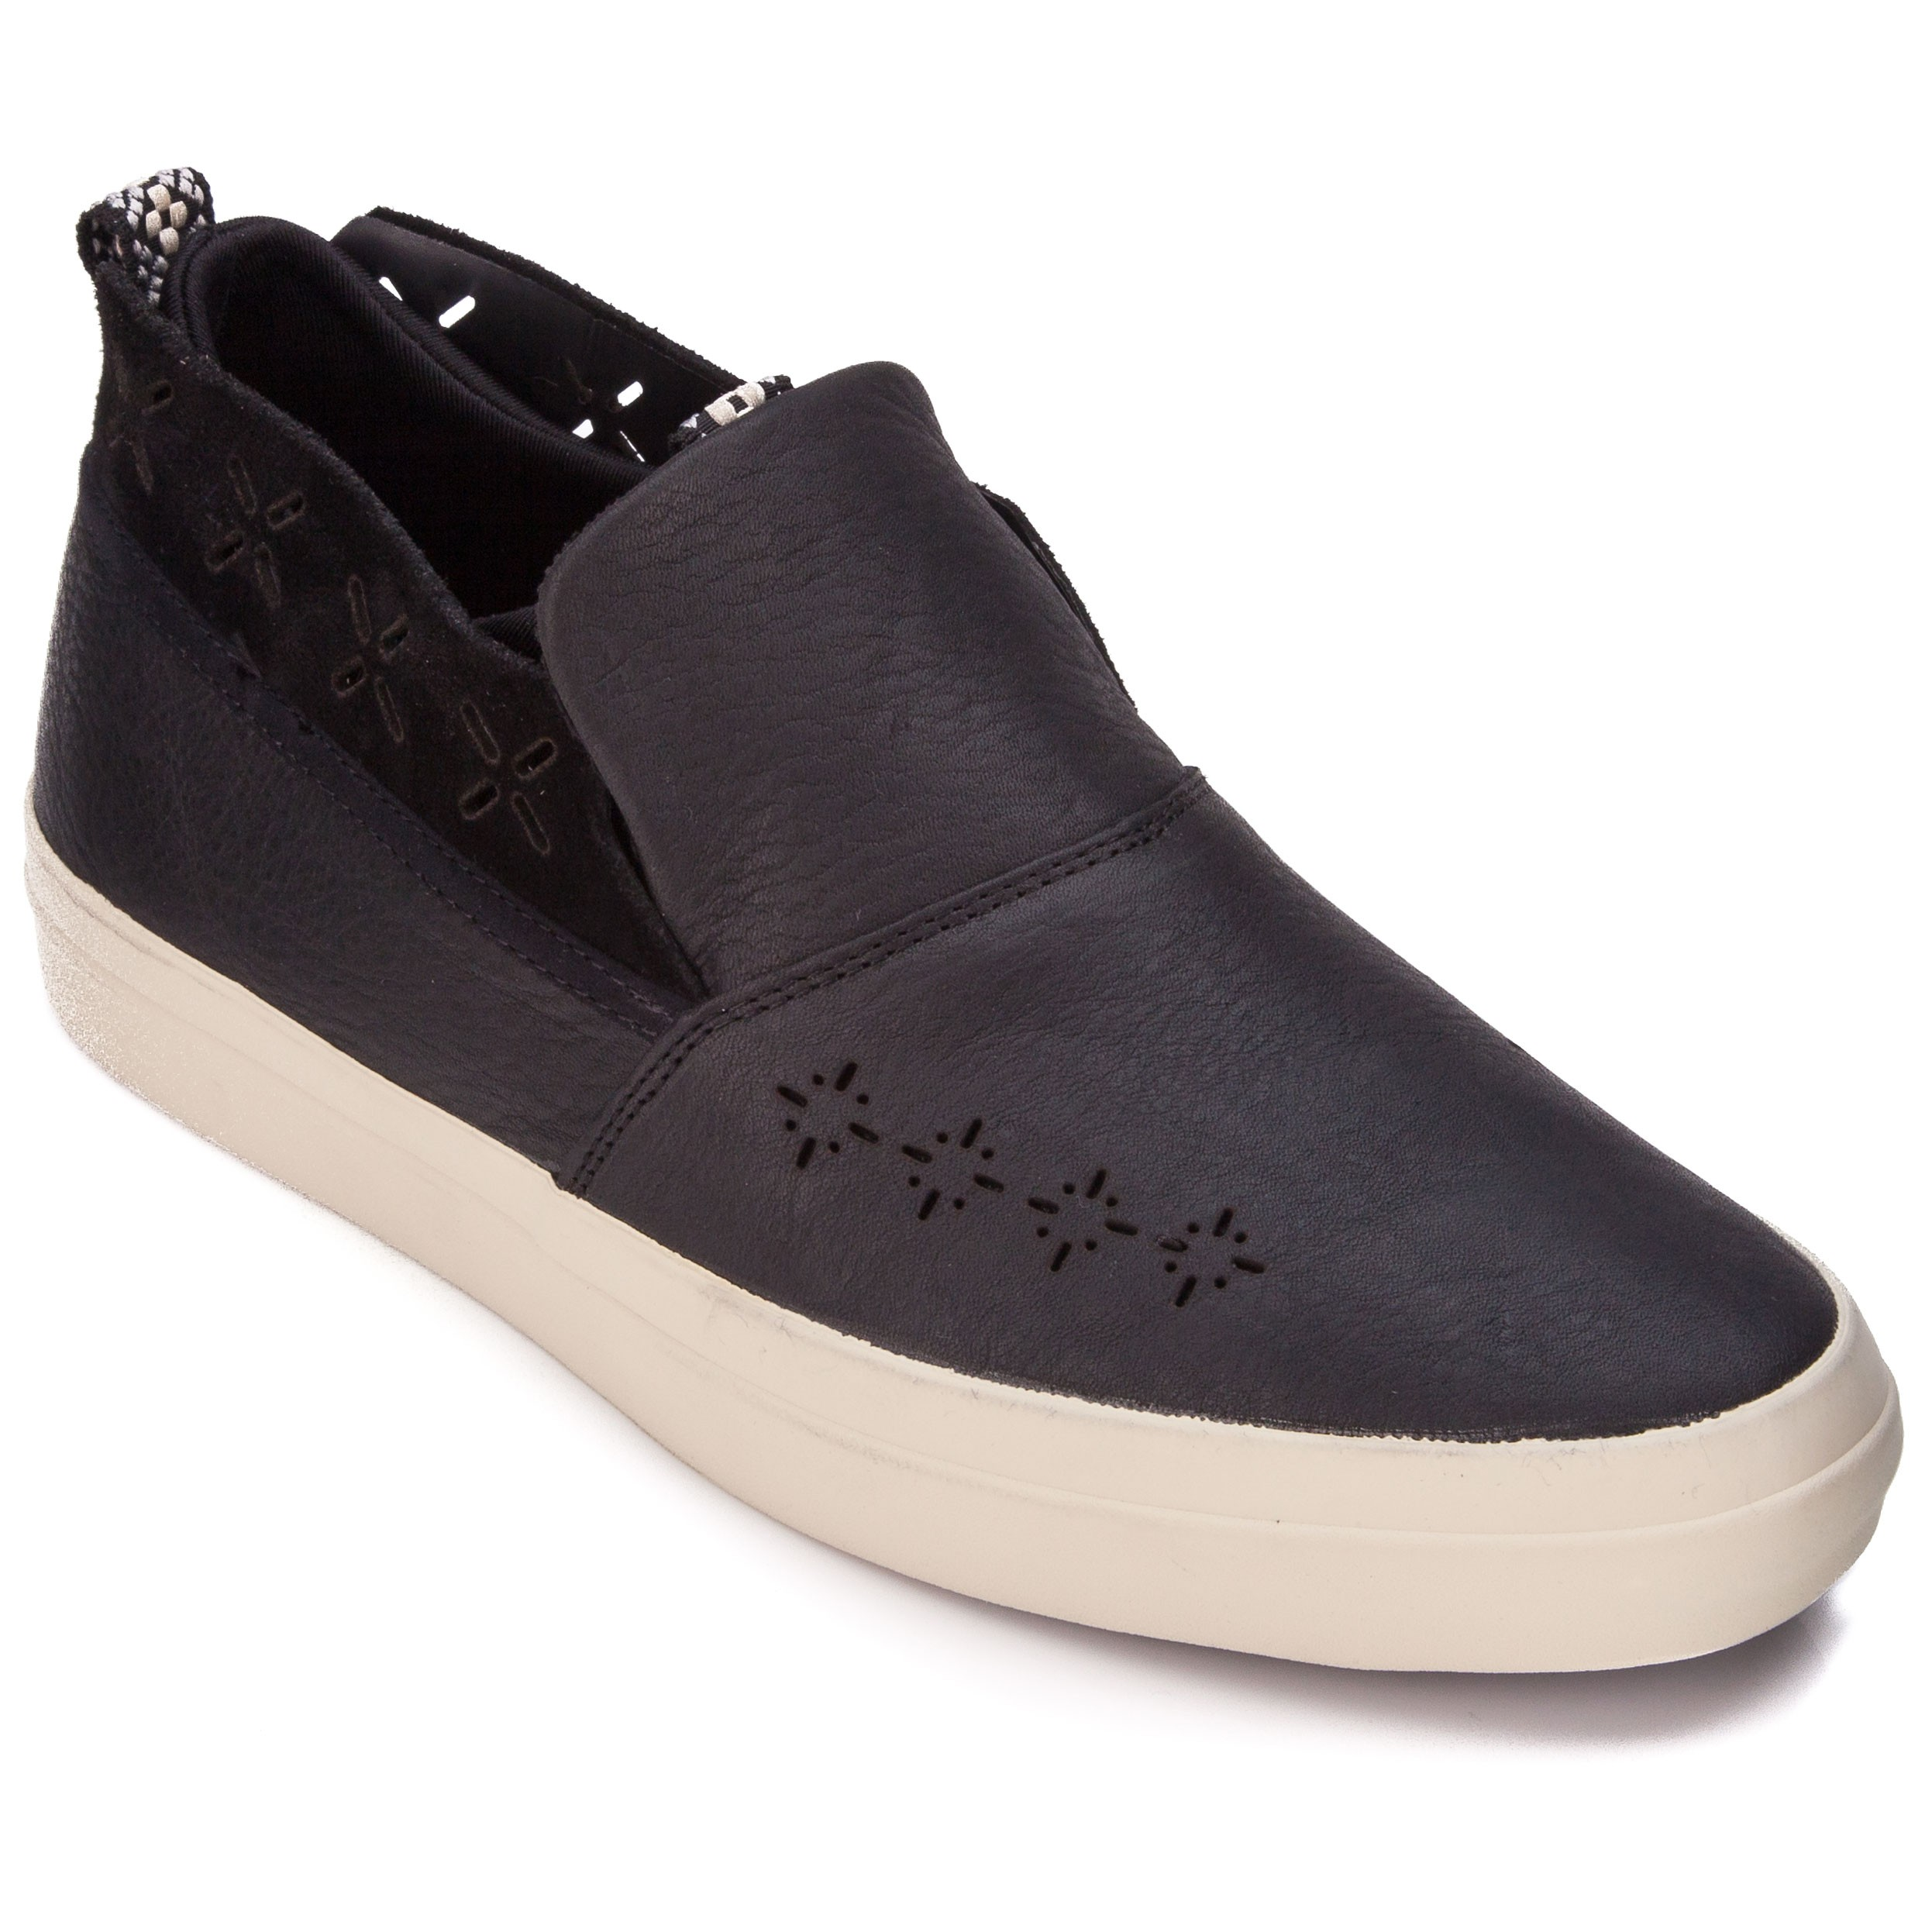 graphite shoe co new products side supply footwear dmnd diamond spring gry sp